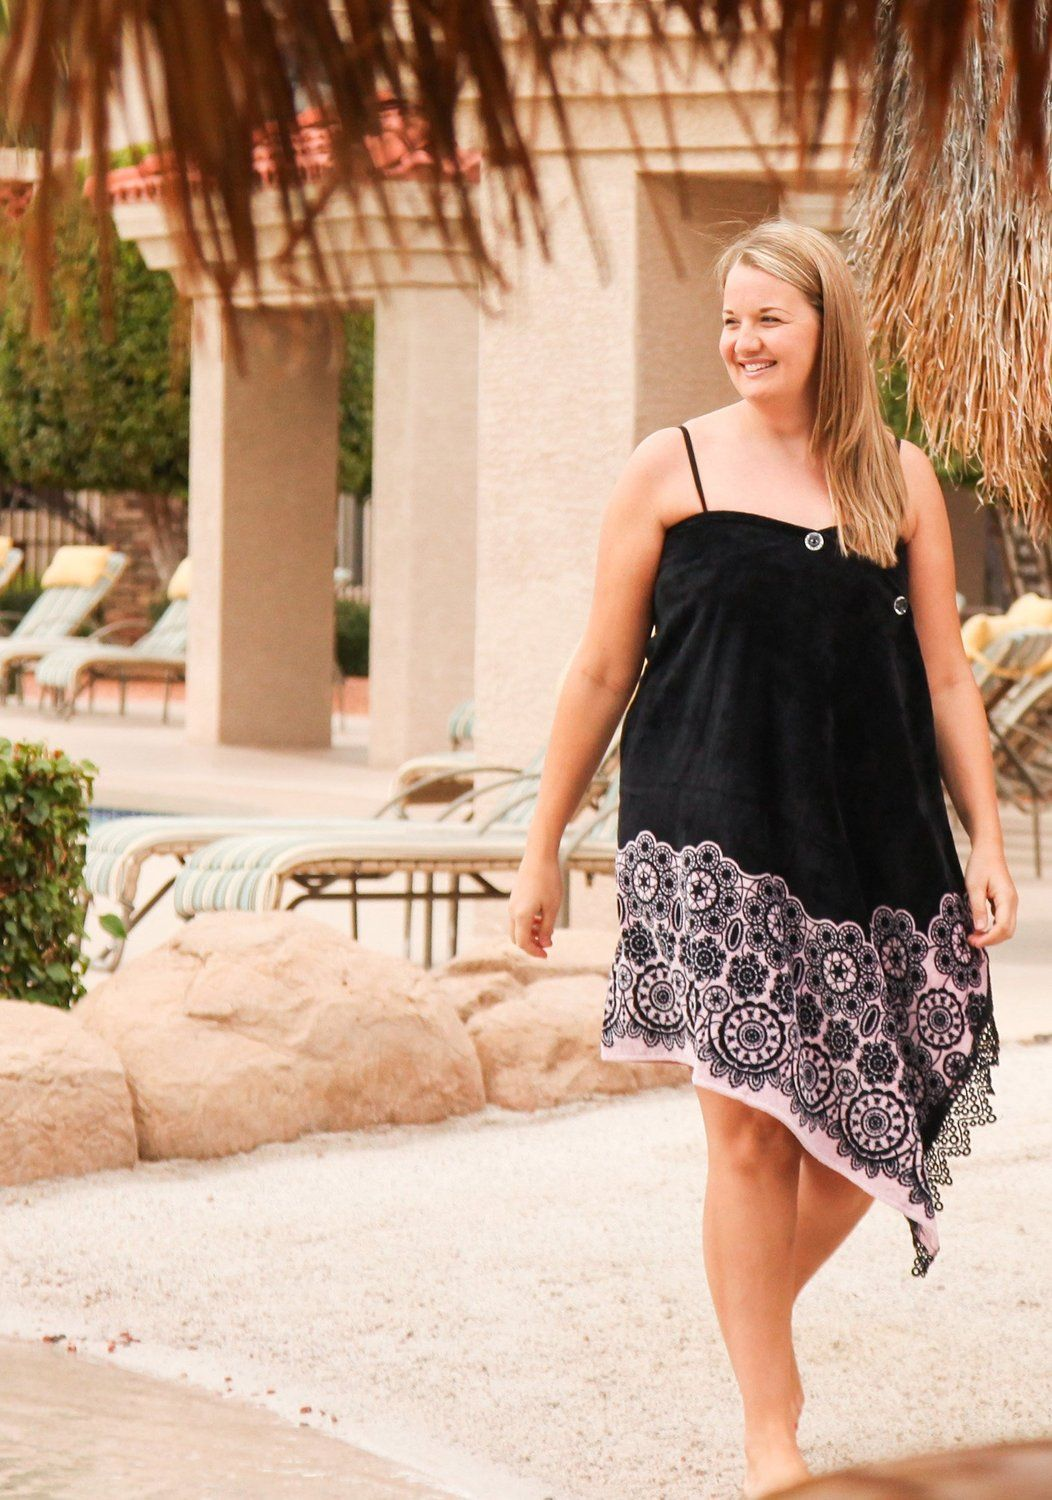 19ed839162 In Black Lace - Simple Sarongs Women's Swimsuit Cover-Up & Beach Towel  All-in-One at Amazon Women's Clothing store: